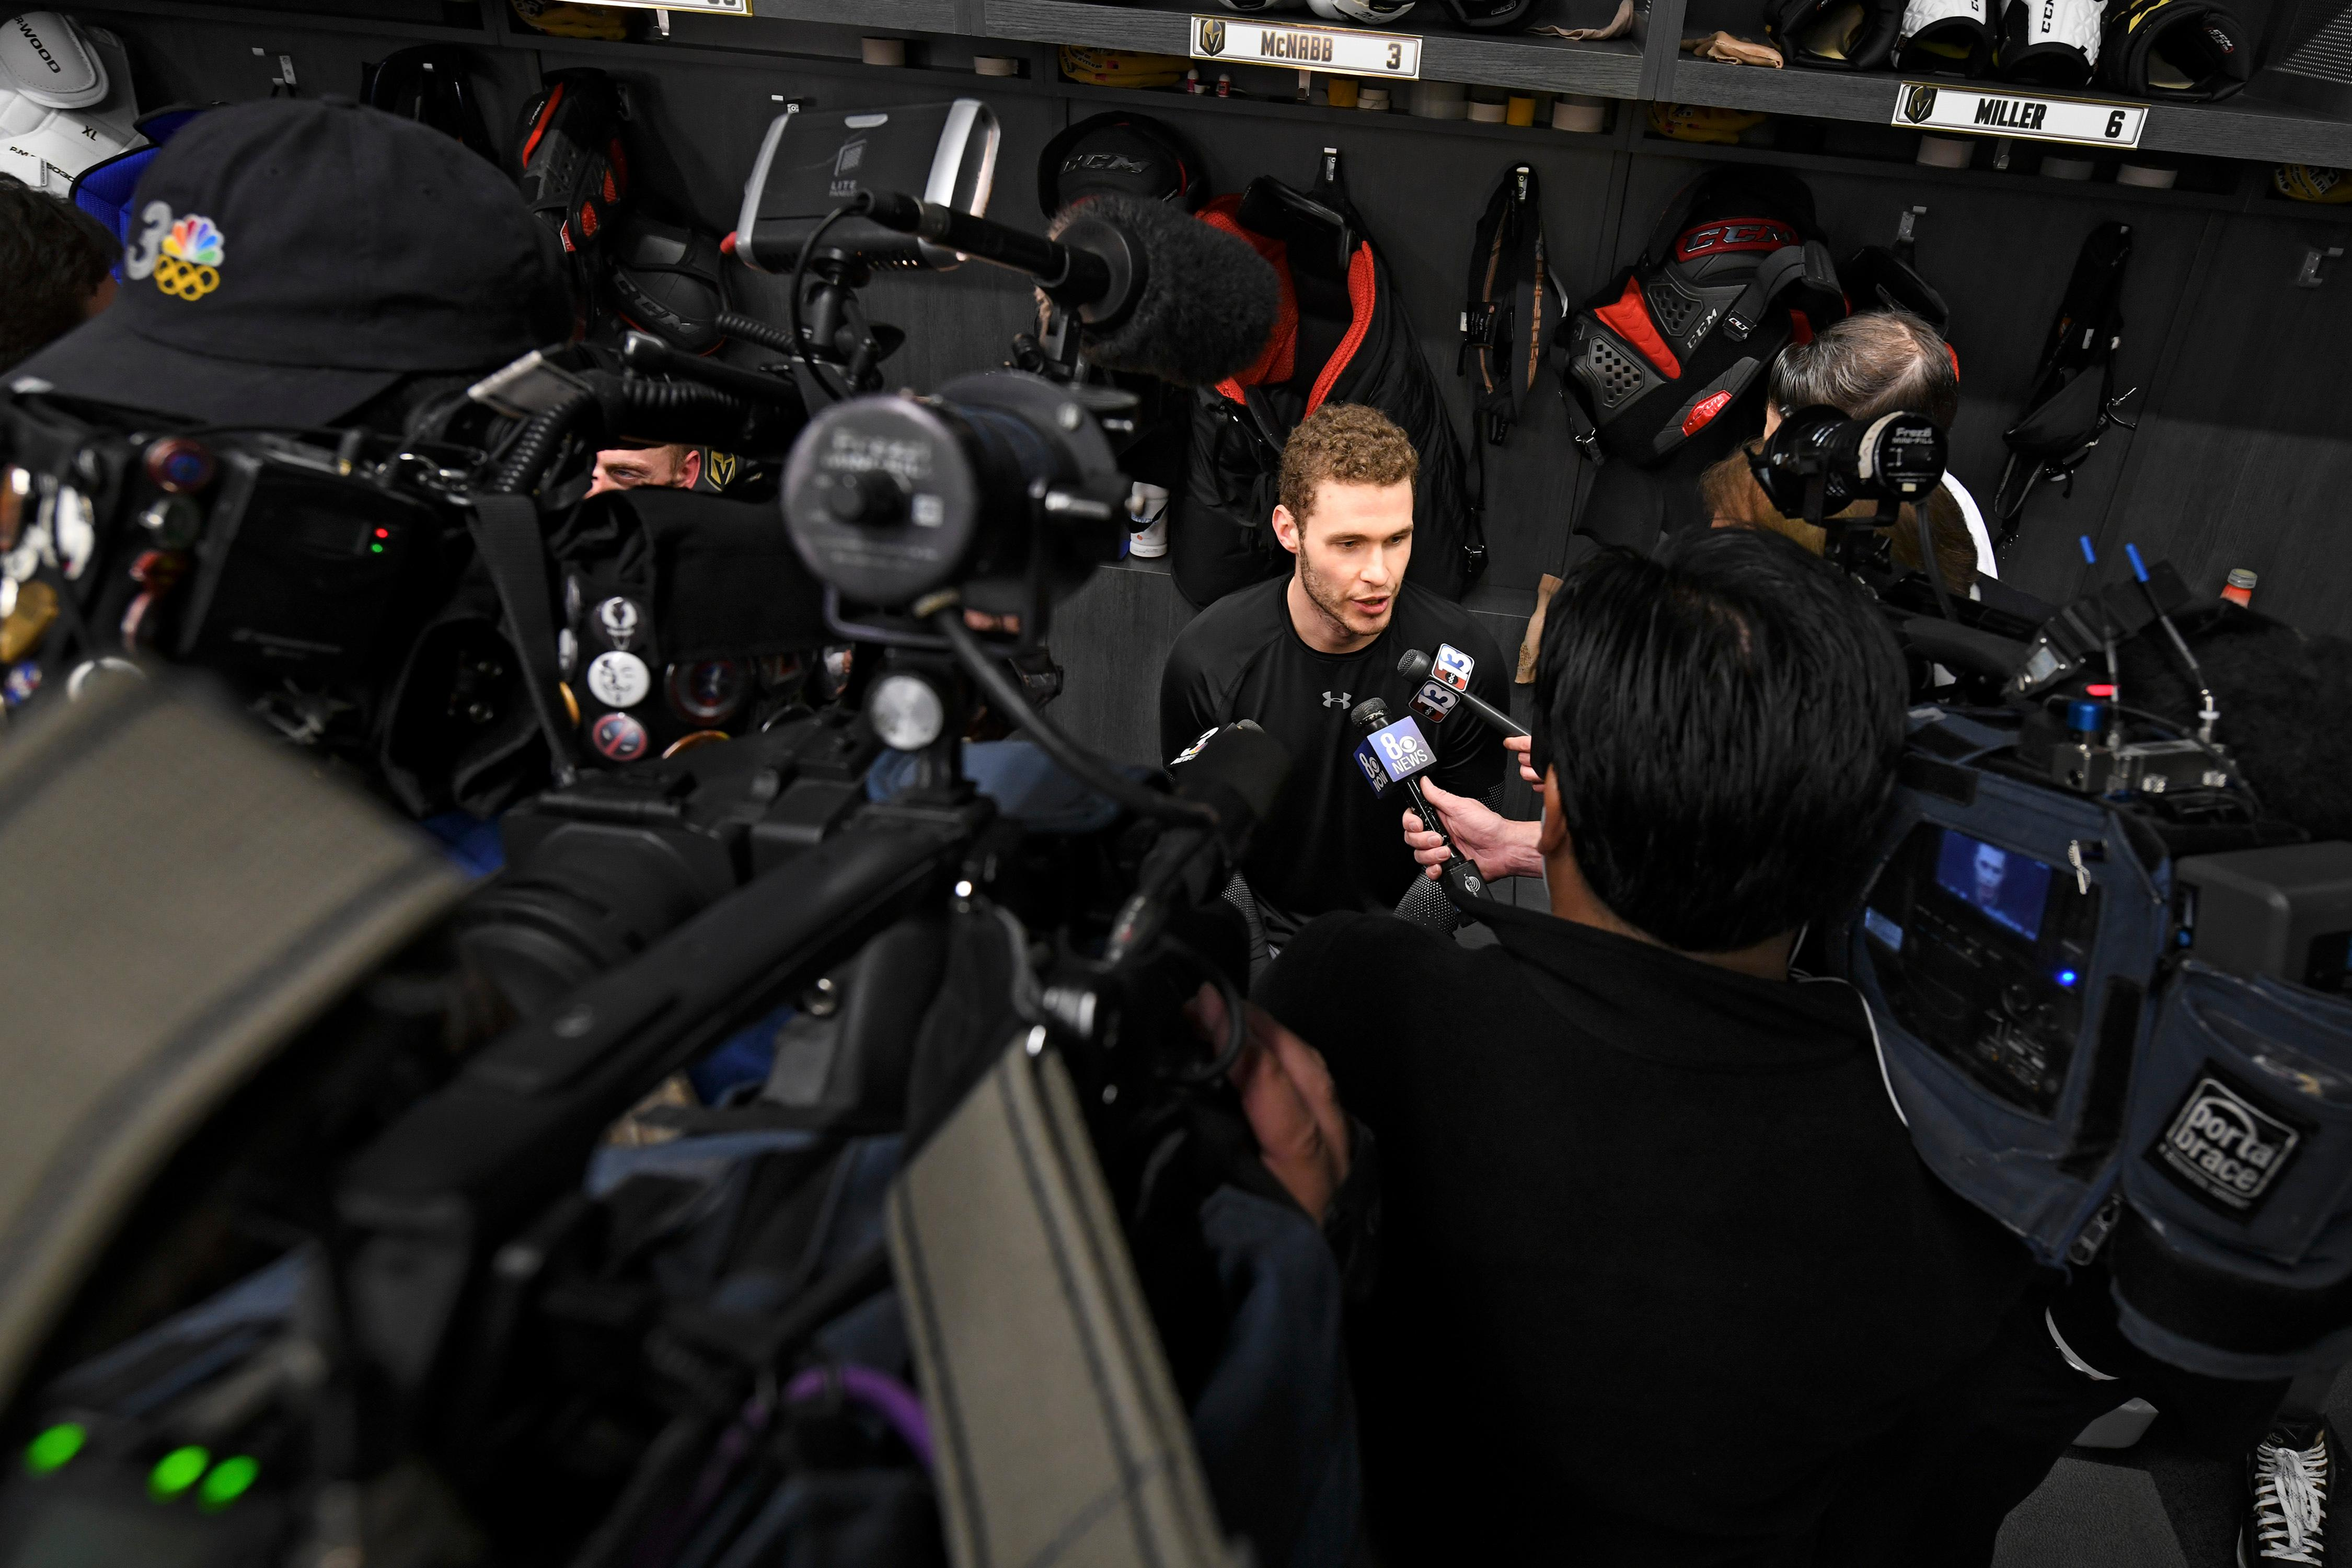 Media converge on Vegas Golden Knights defenseman Brayden McNabb (3) after the Vegas Golden Knights practice Friday, April 20, 2018, at City National Arena in Las Vegas. McNabb scored the winning goal against the Los Angeles Kings, his former team, to sweep the Kings in their first round playoff series. CREDIT: Sam Morris/Las Vegas News Bureau